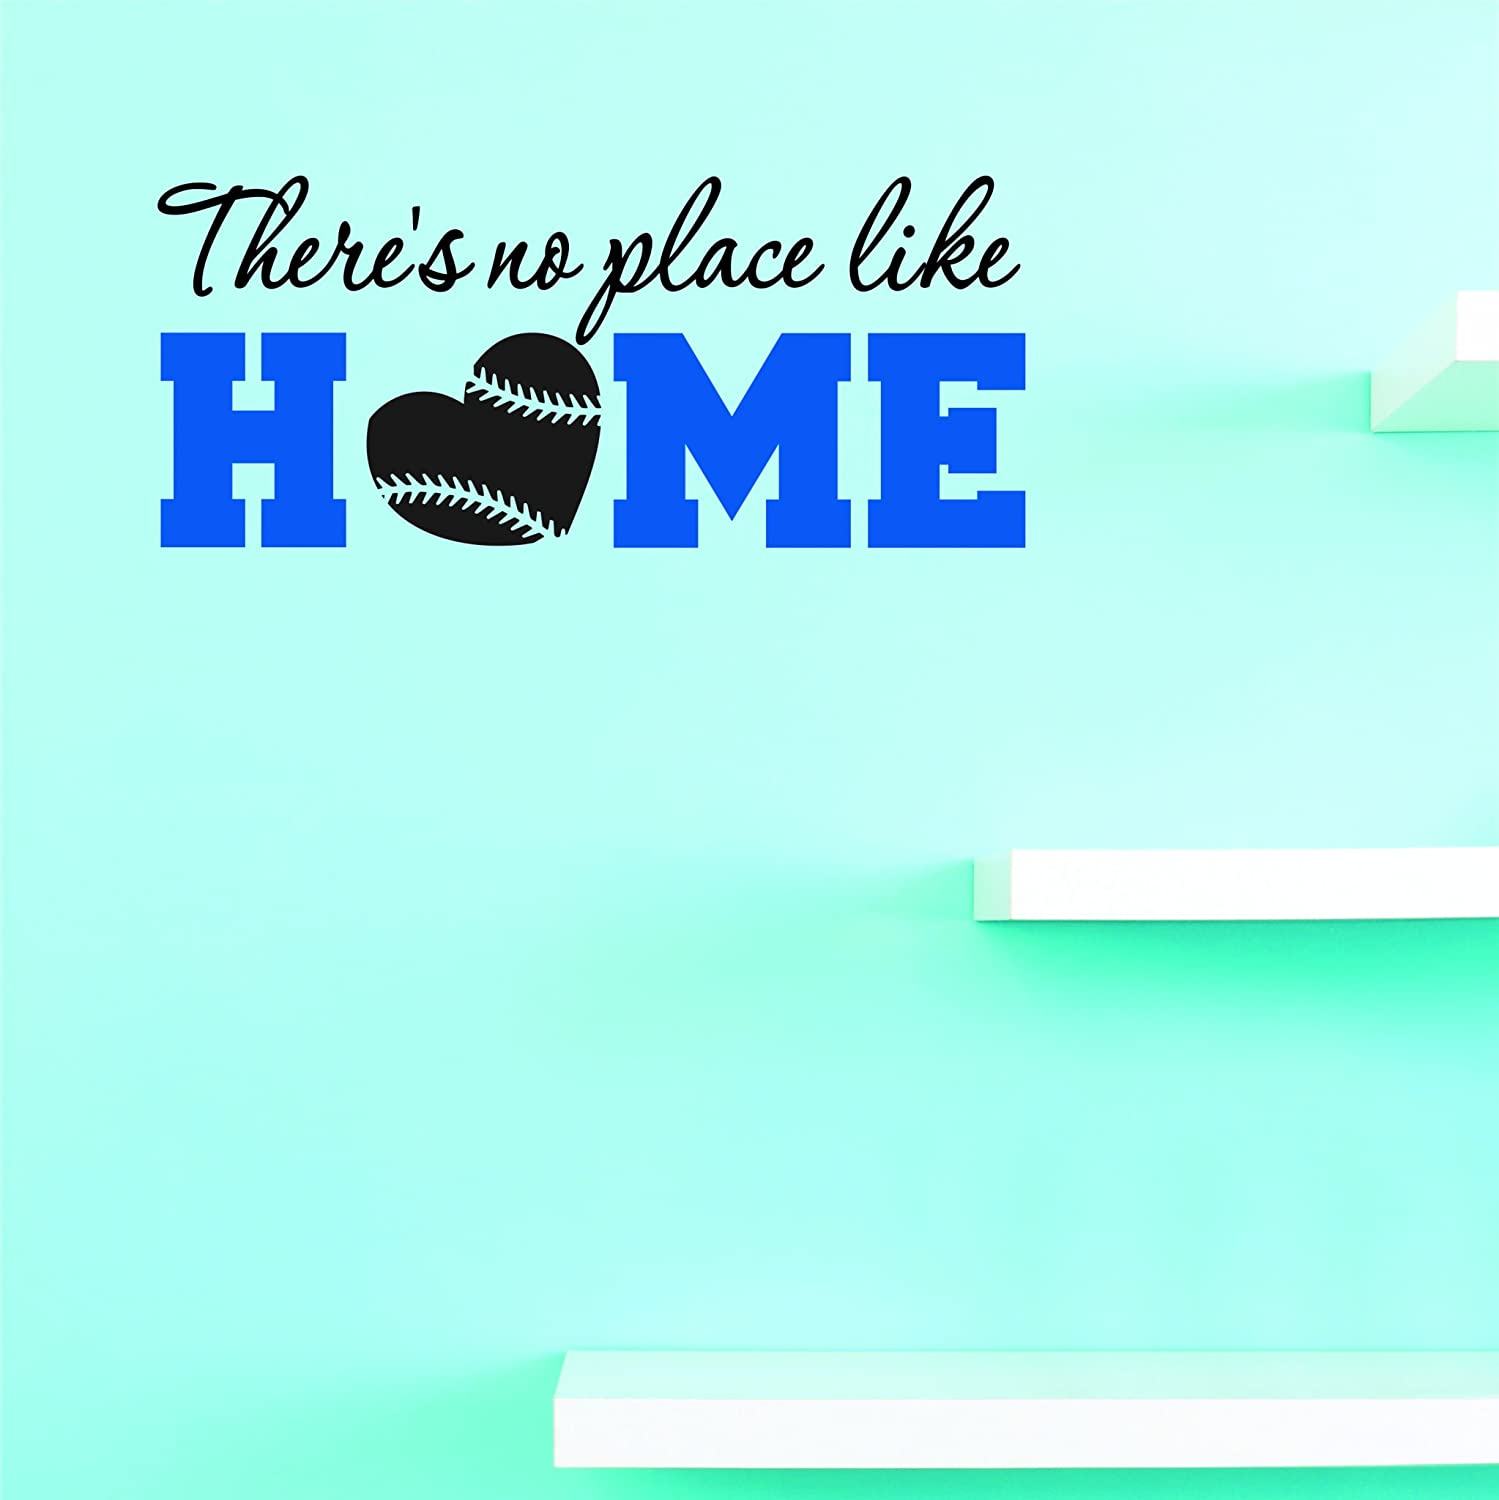 Design Superior with Vinyl JER 2314 3 Hot lik San Antonio Mall Decals no New There's place